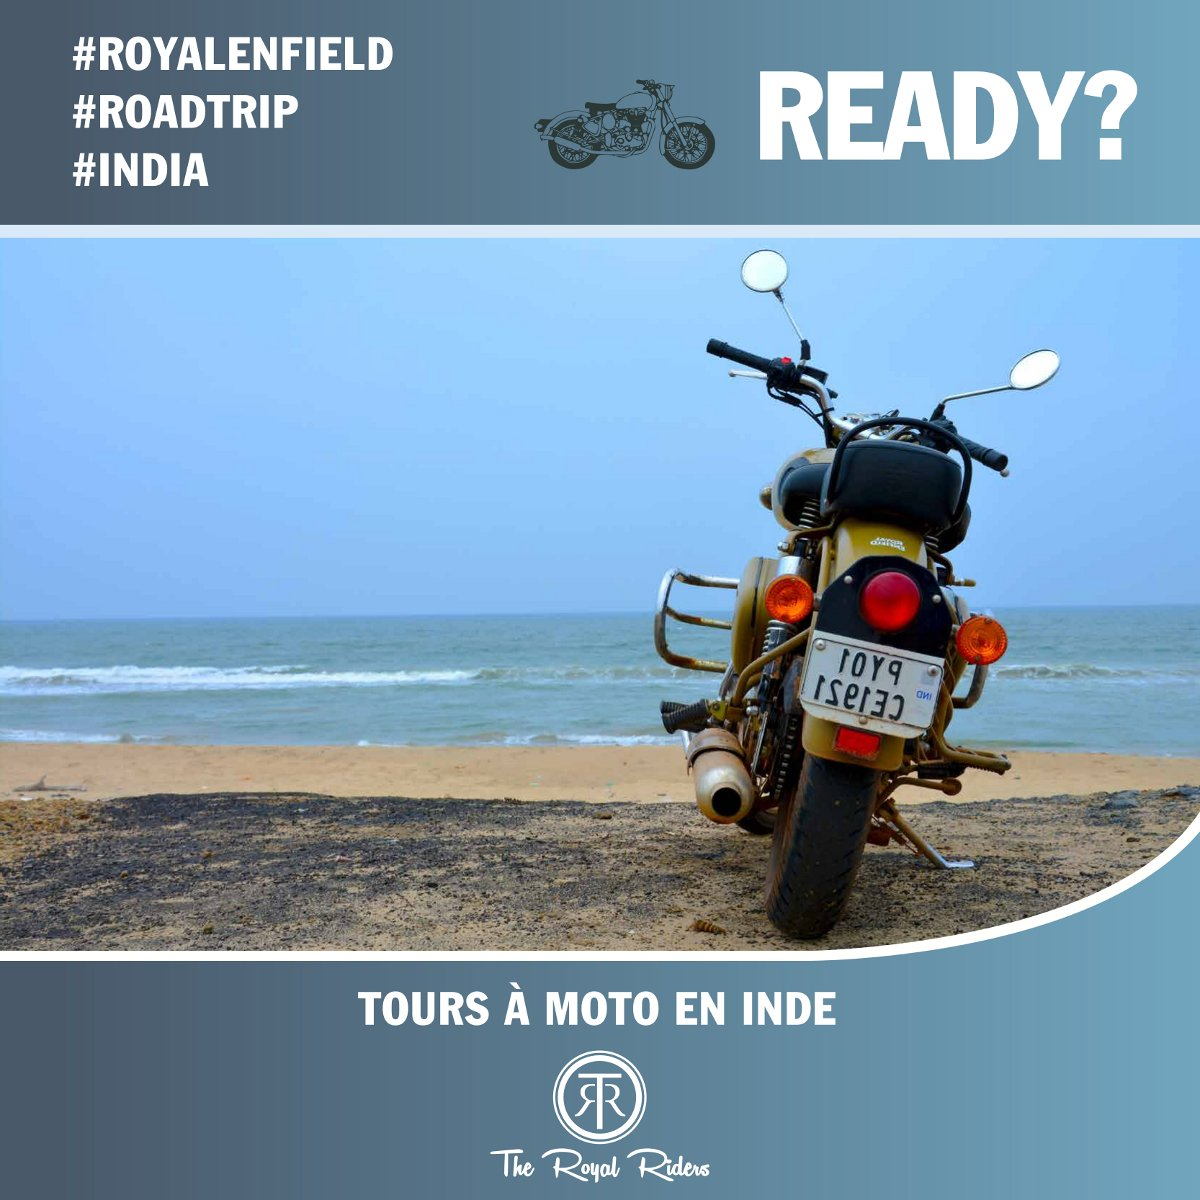 The Royal Riders - Tours organisés à moto en Inde.